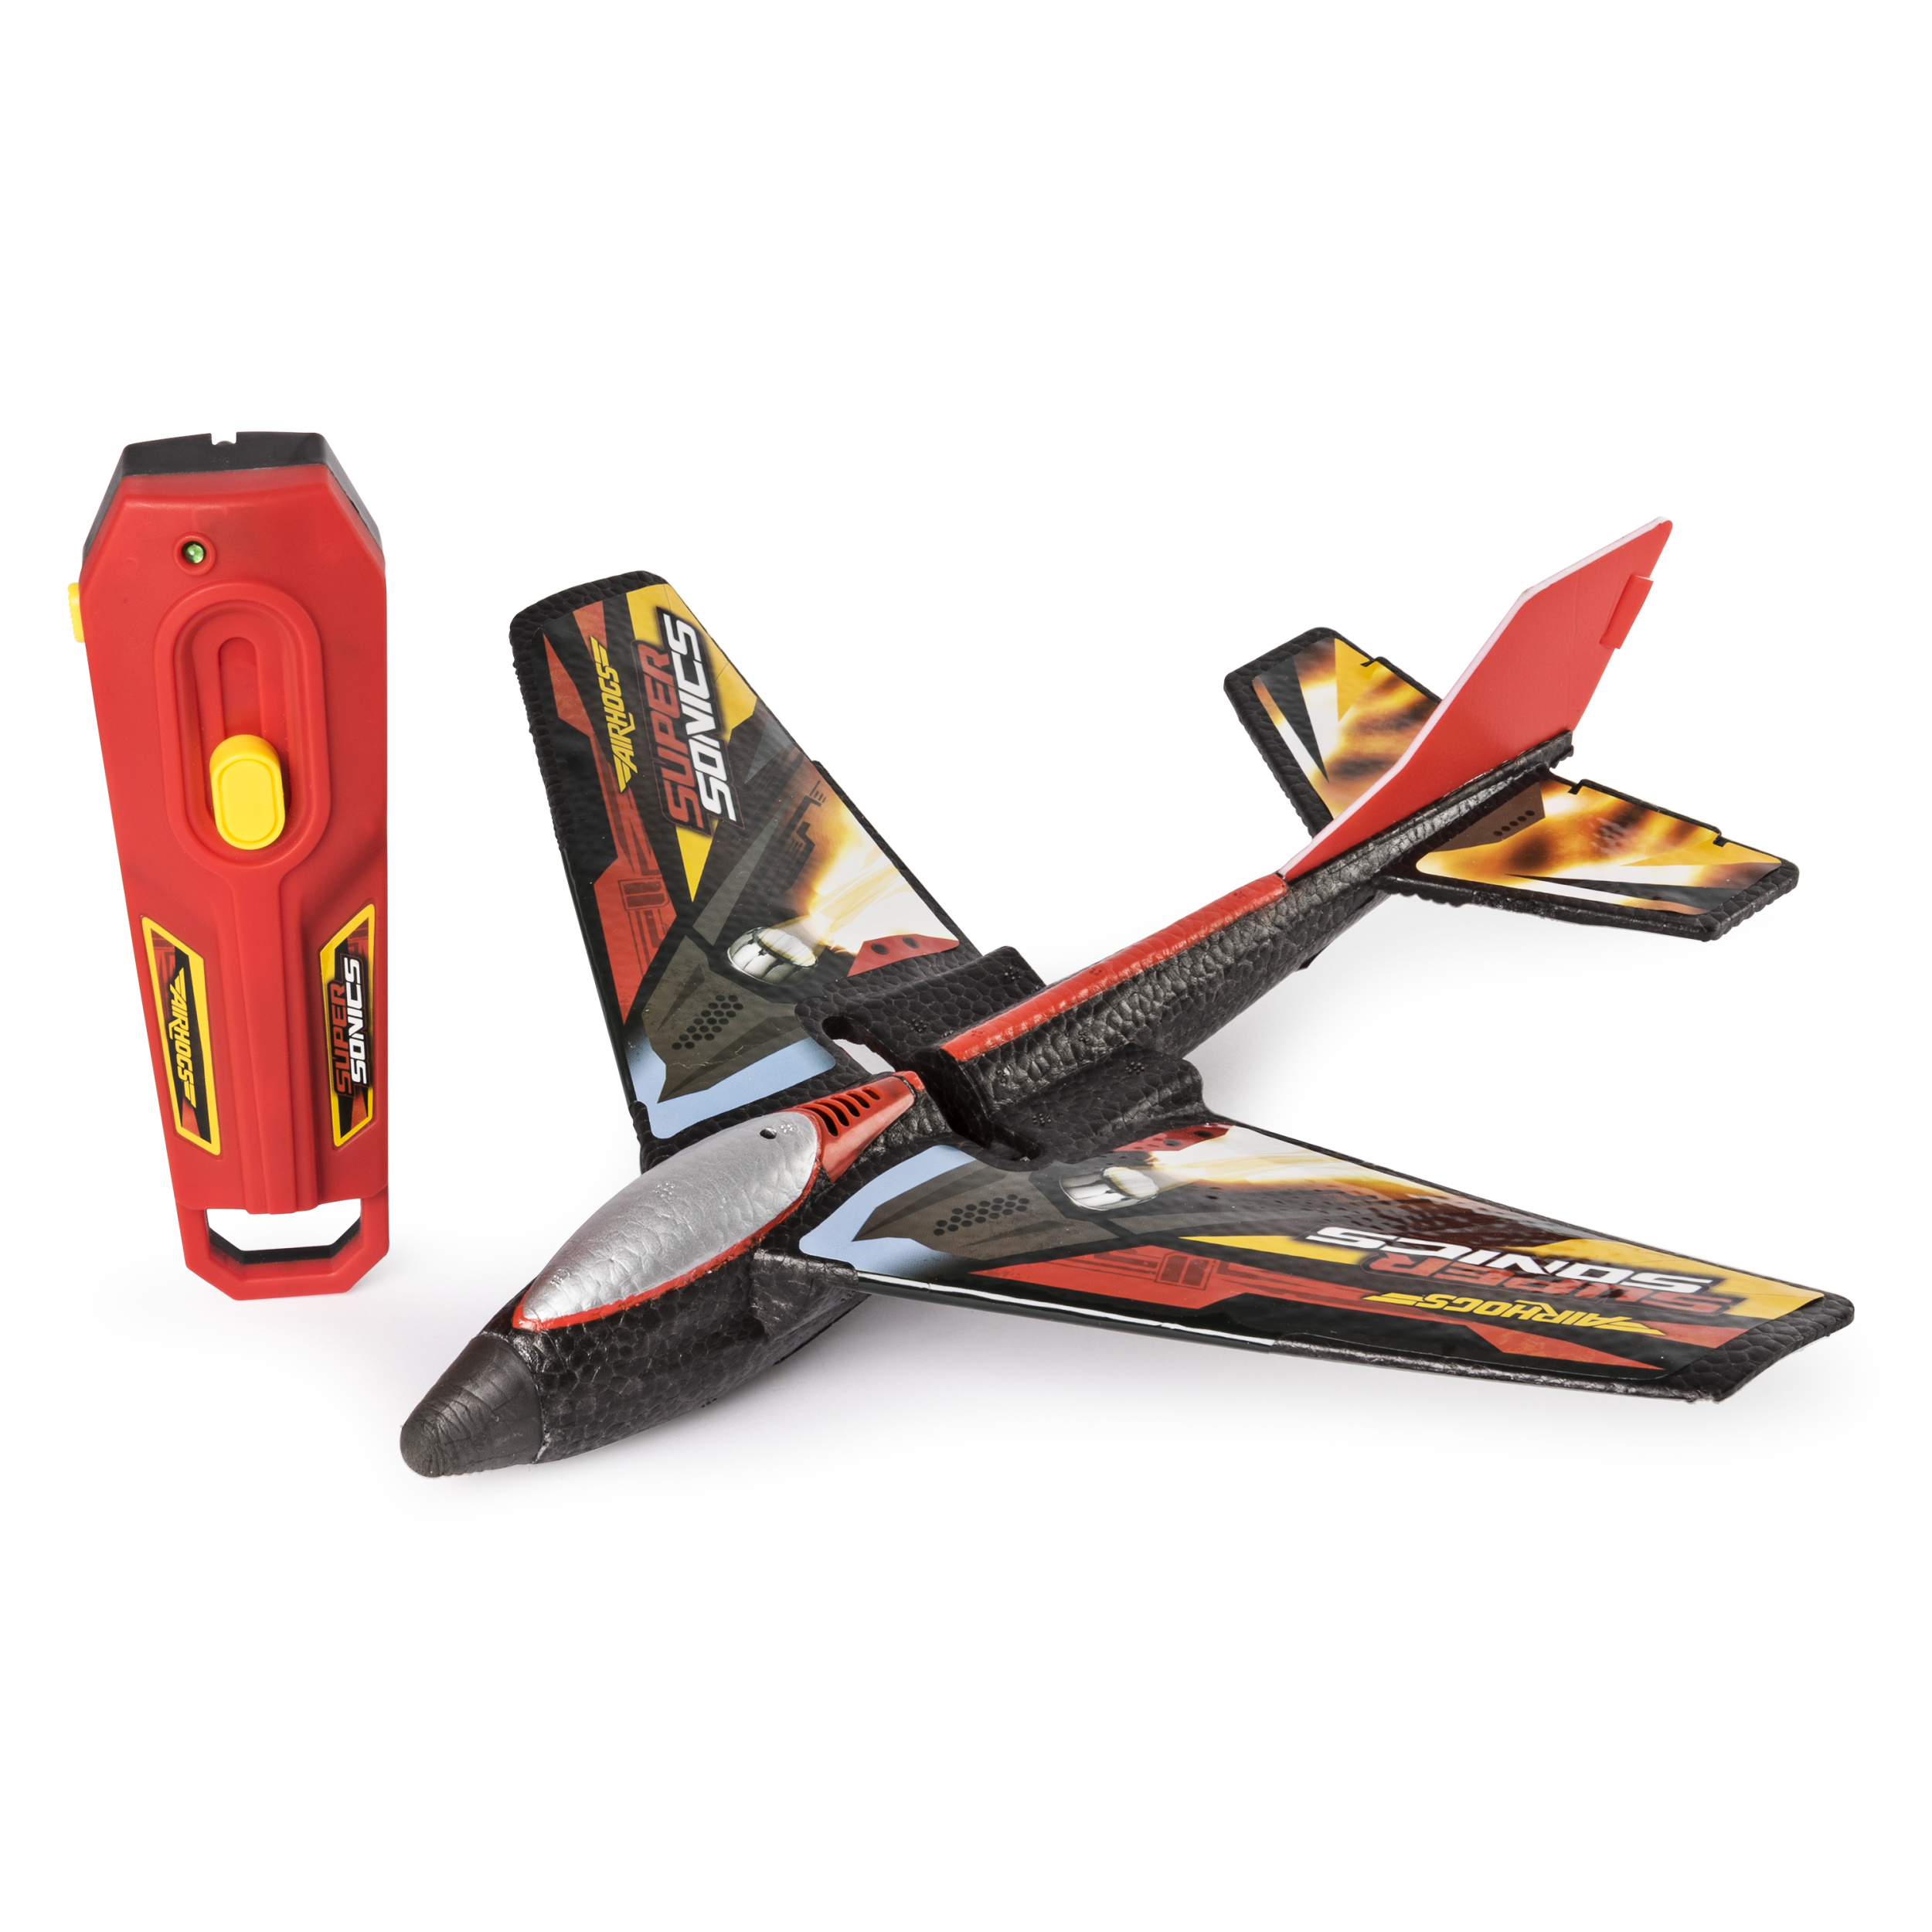 Air Hogs ‐ Sonic Plane High‐Speed Flyer with Real Motor Sounds